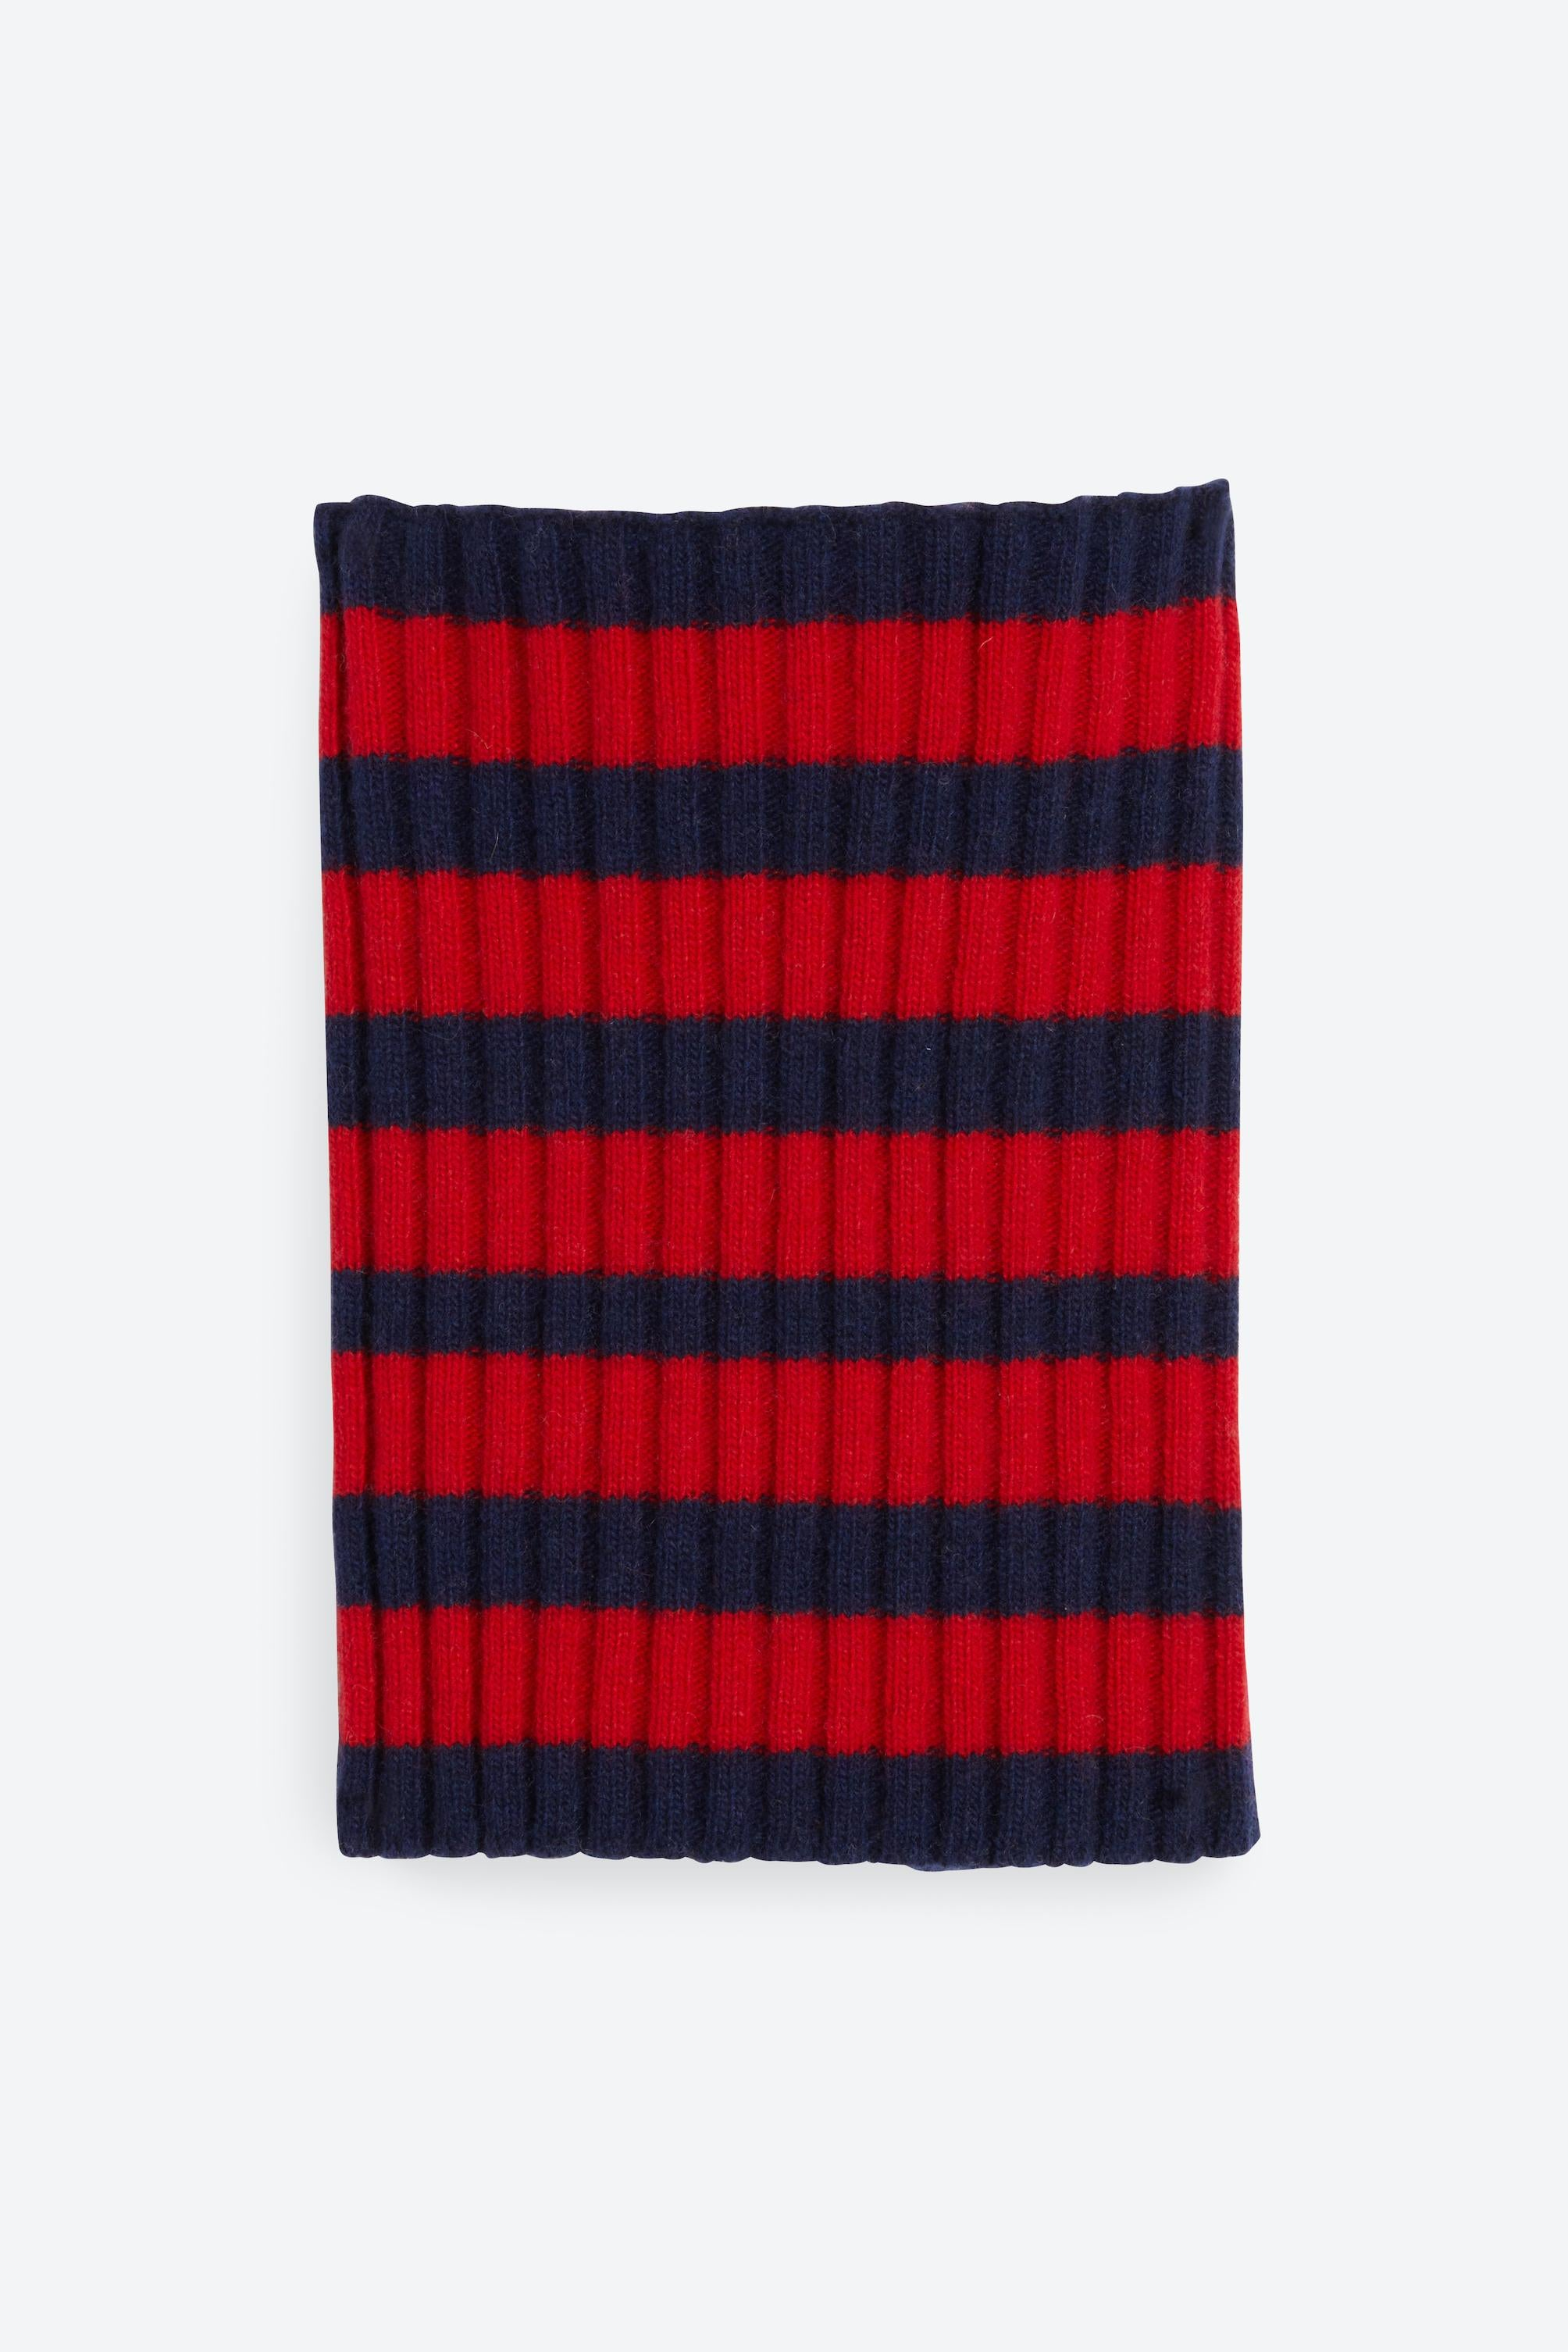 BALTHAZAR | Stripe Navy / Red